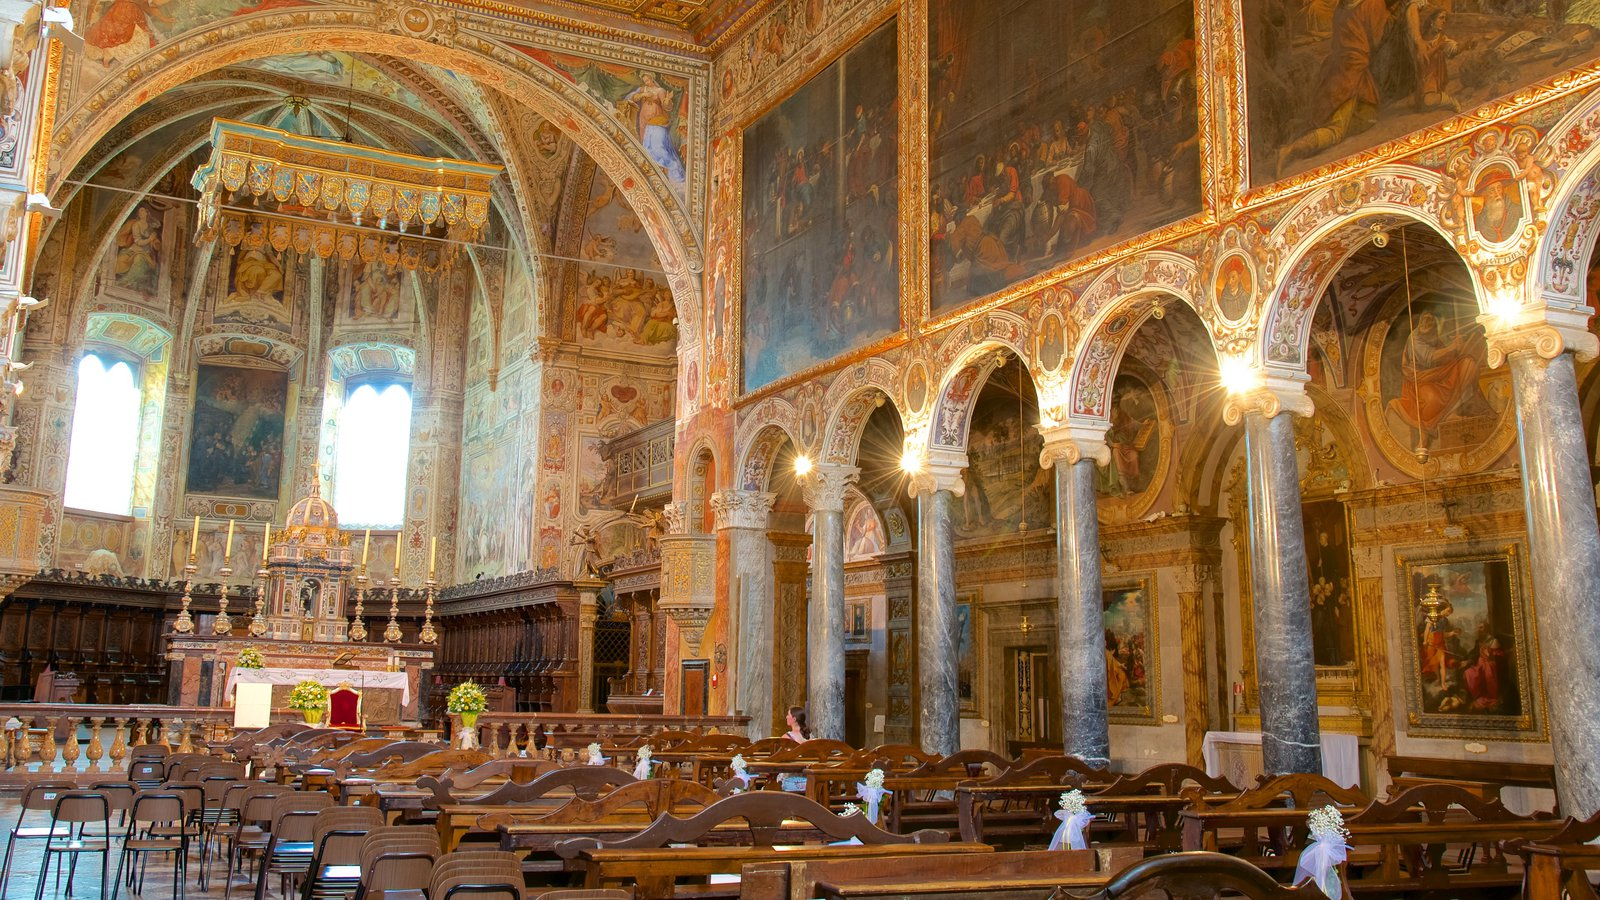 Basilica San Pietro which includes art, heritage elements and a church or cathedral